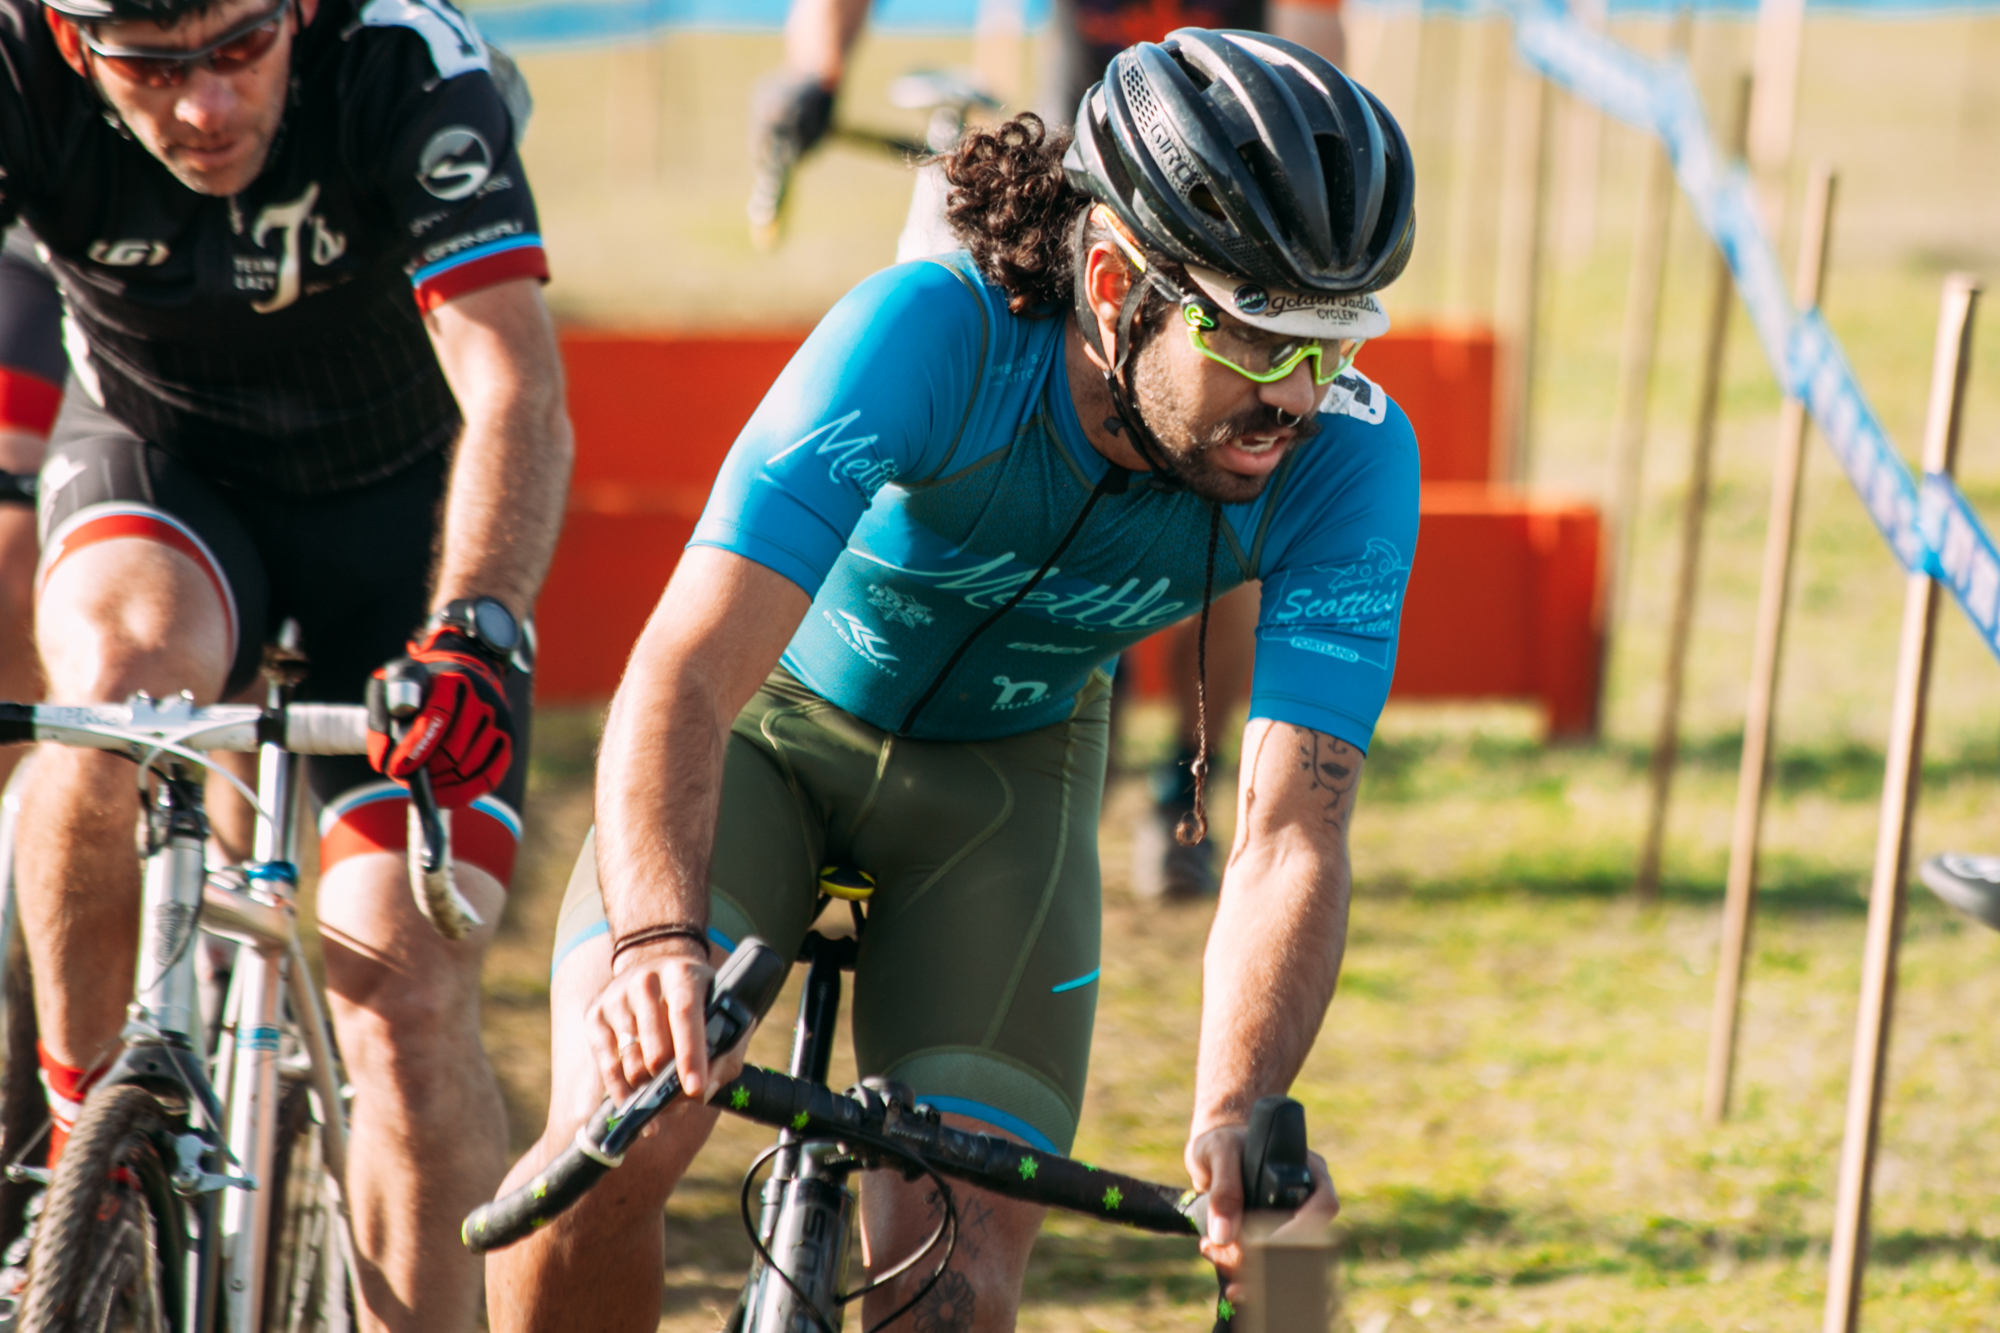 Cyclocross18_CCCX_RainierHS-69-mettlecycling.jpg